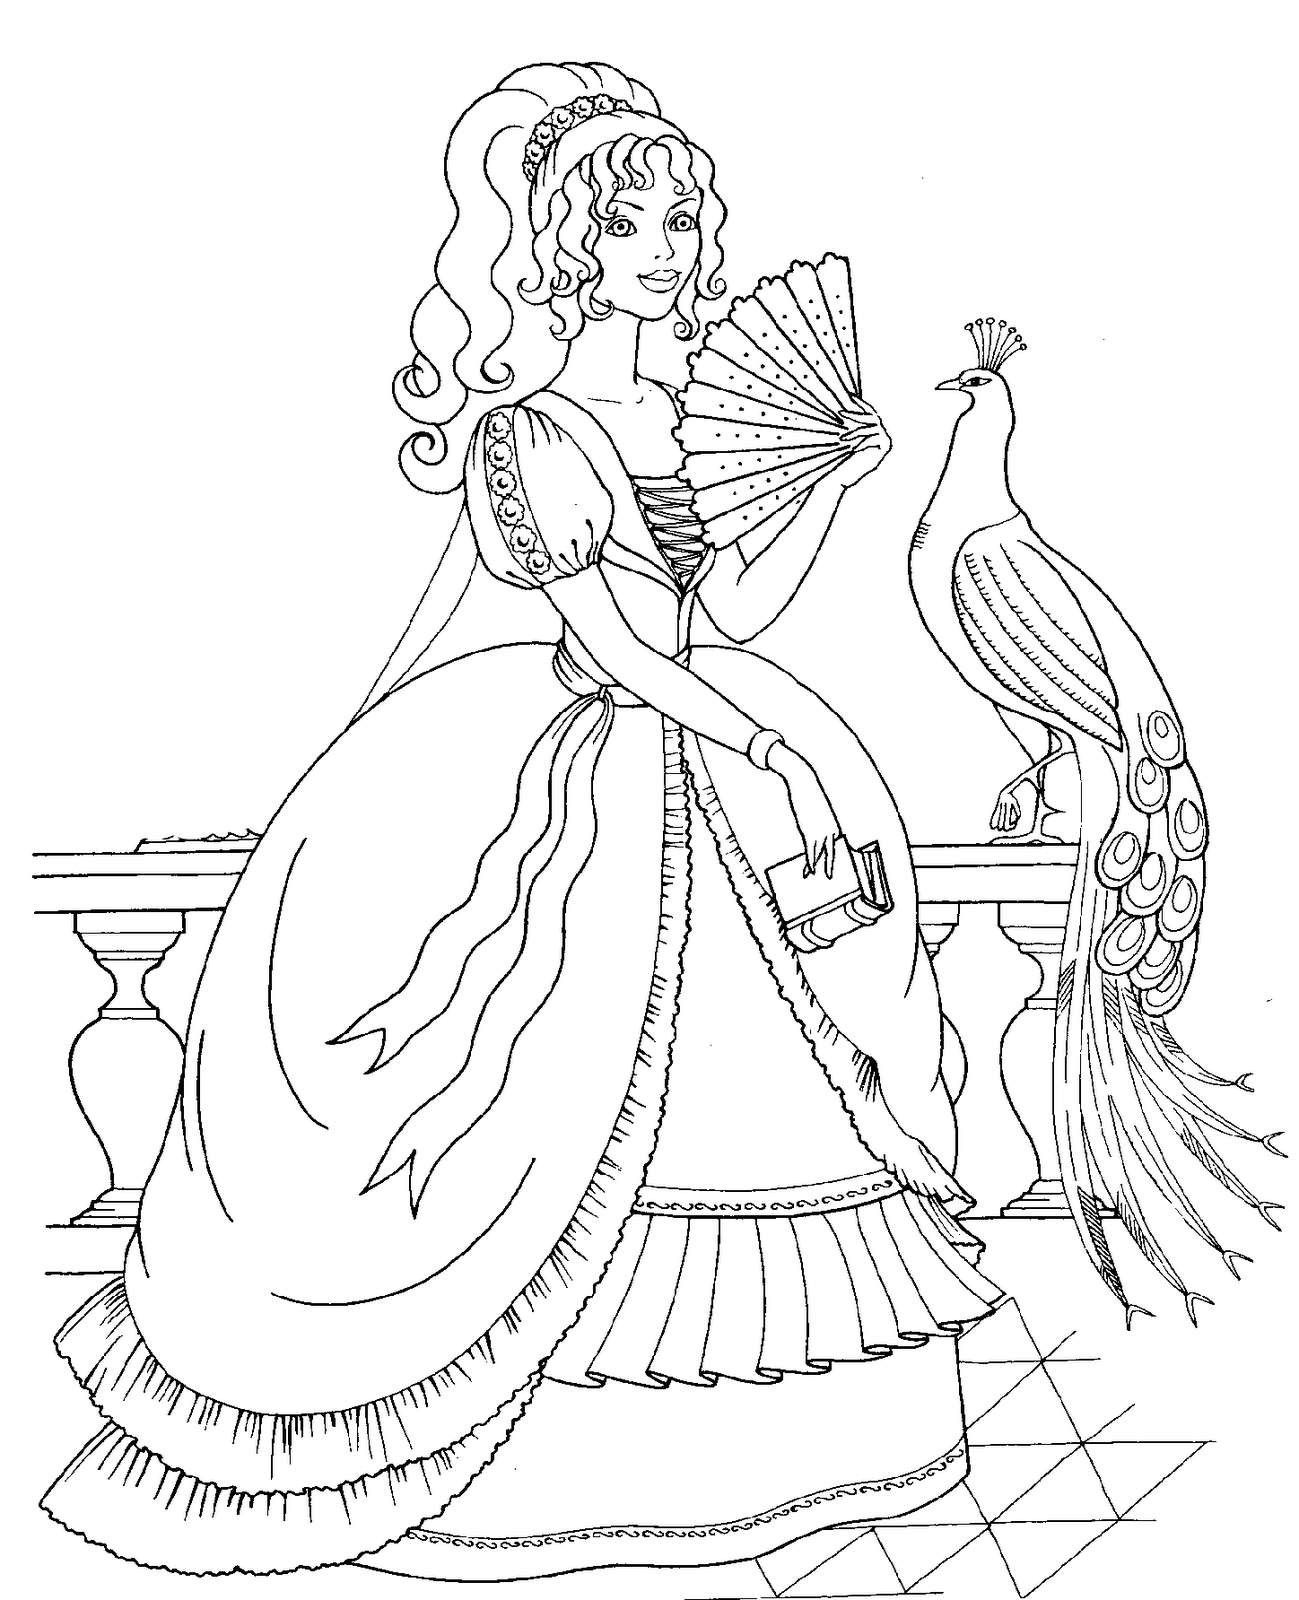 Disney Princess Full Size Coloring Pages Through The Thousand Photos On The Internet Ab Princess Coloring Pages Peacock Coloring Pages Mermaid Coloring Pages